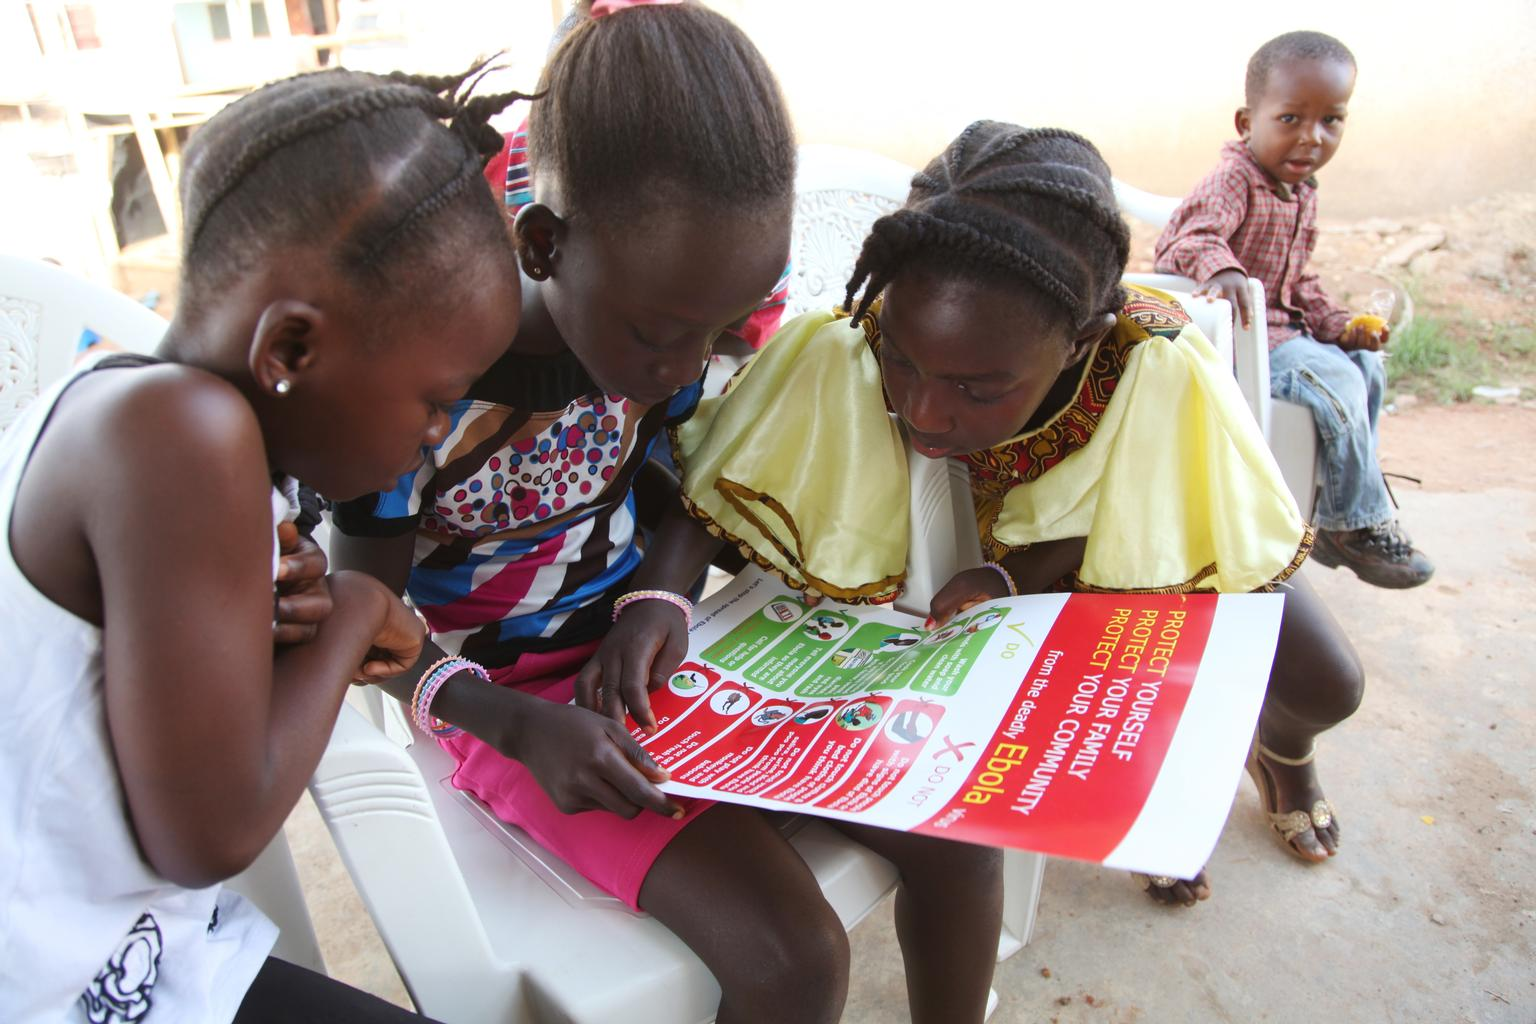 A group of girls in Liberia reads a poster with Ebola-prevention information.